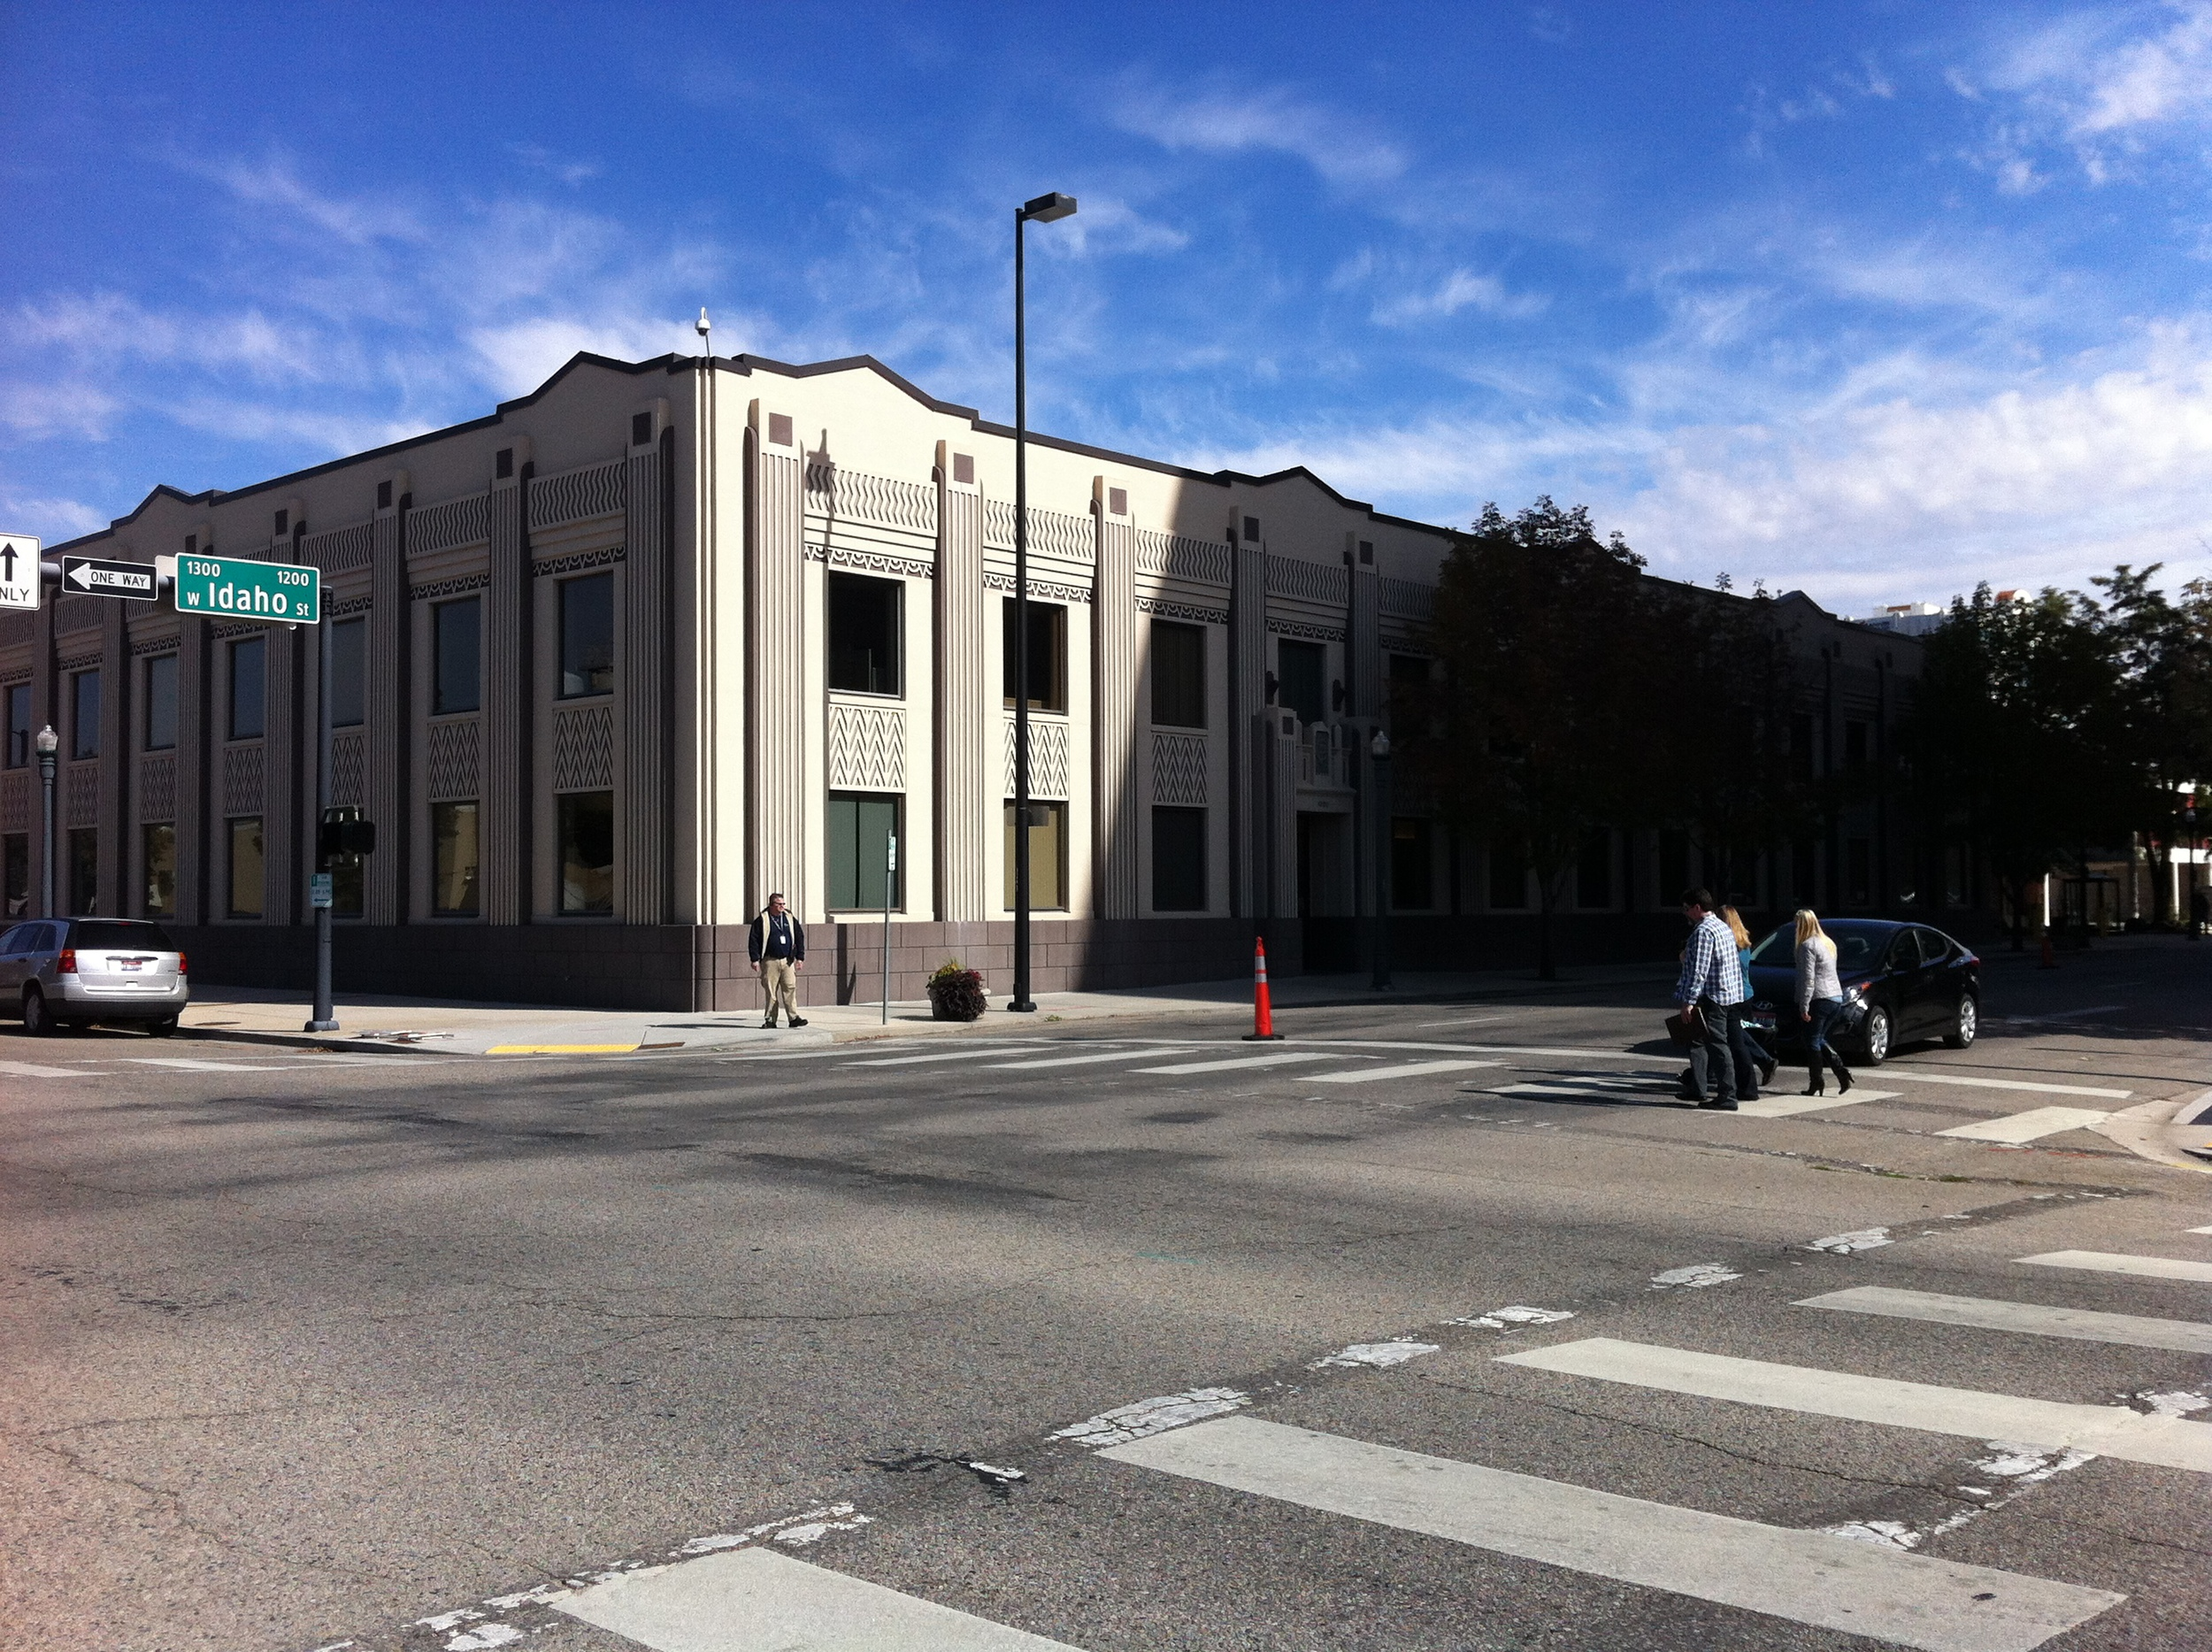 """Idaho Power Company's building at 1220 West Idaho Street. The is a good example of zig-zag Art Deco style with its forms repeating the American Indian symbol for lightning – a device also exploited in the """"Ready Kilowatt"""" character, long used to symbolize electrical companies.Designed by Wayland & Fennel in the mid-1930s, it has a later addition on the east end that mimics the original details."""